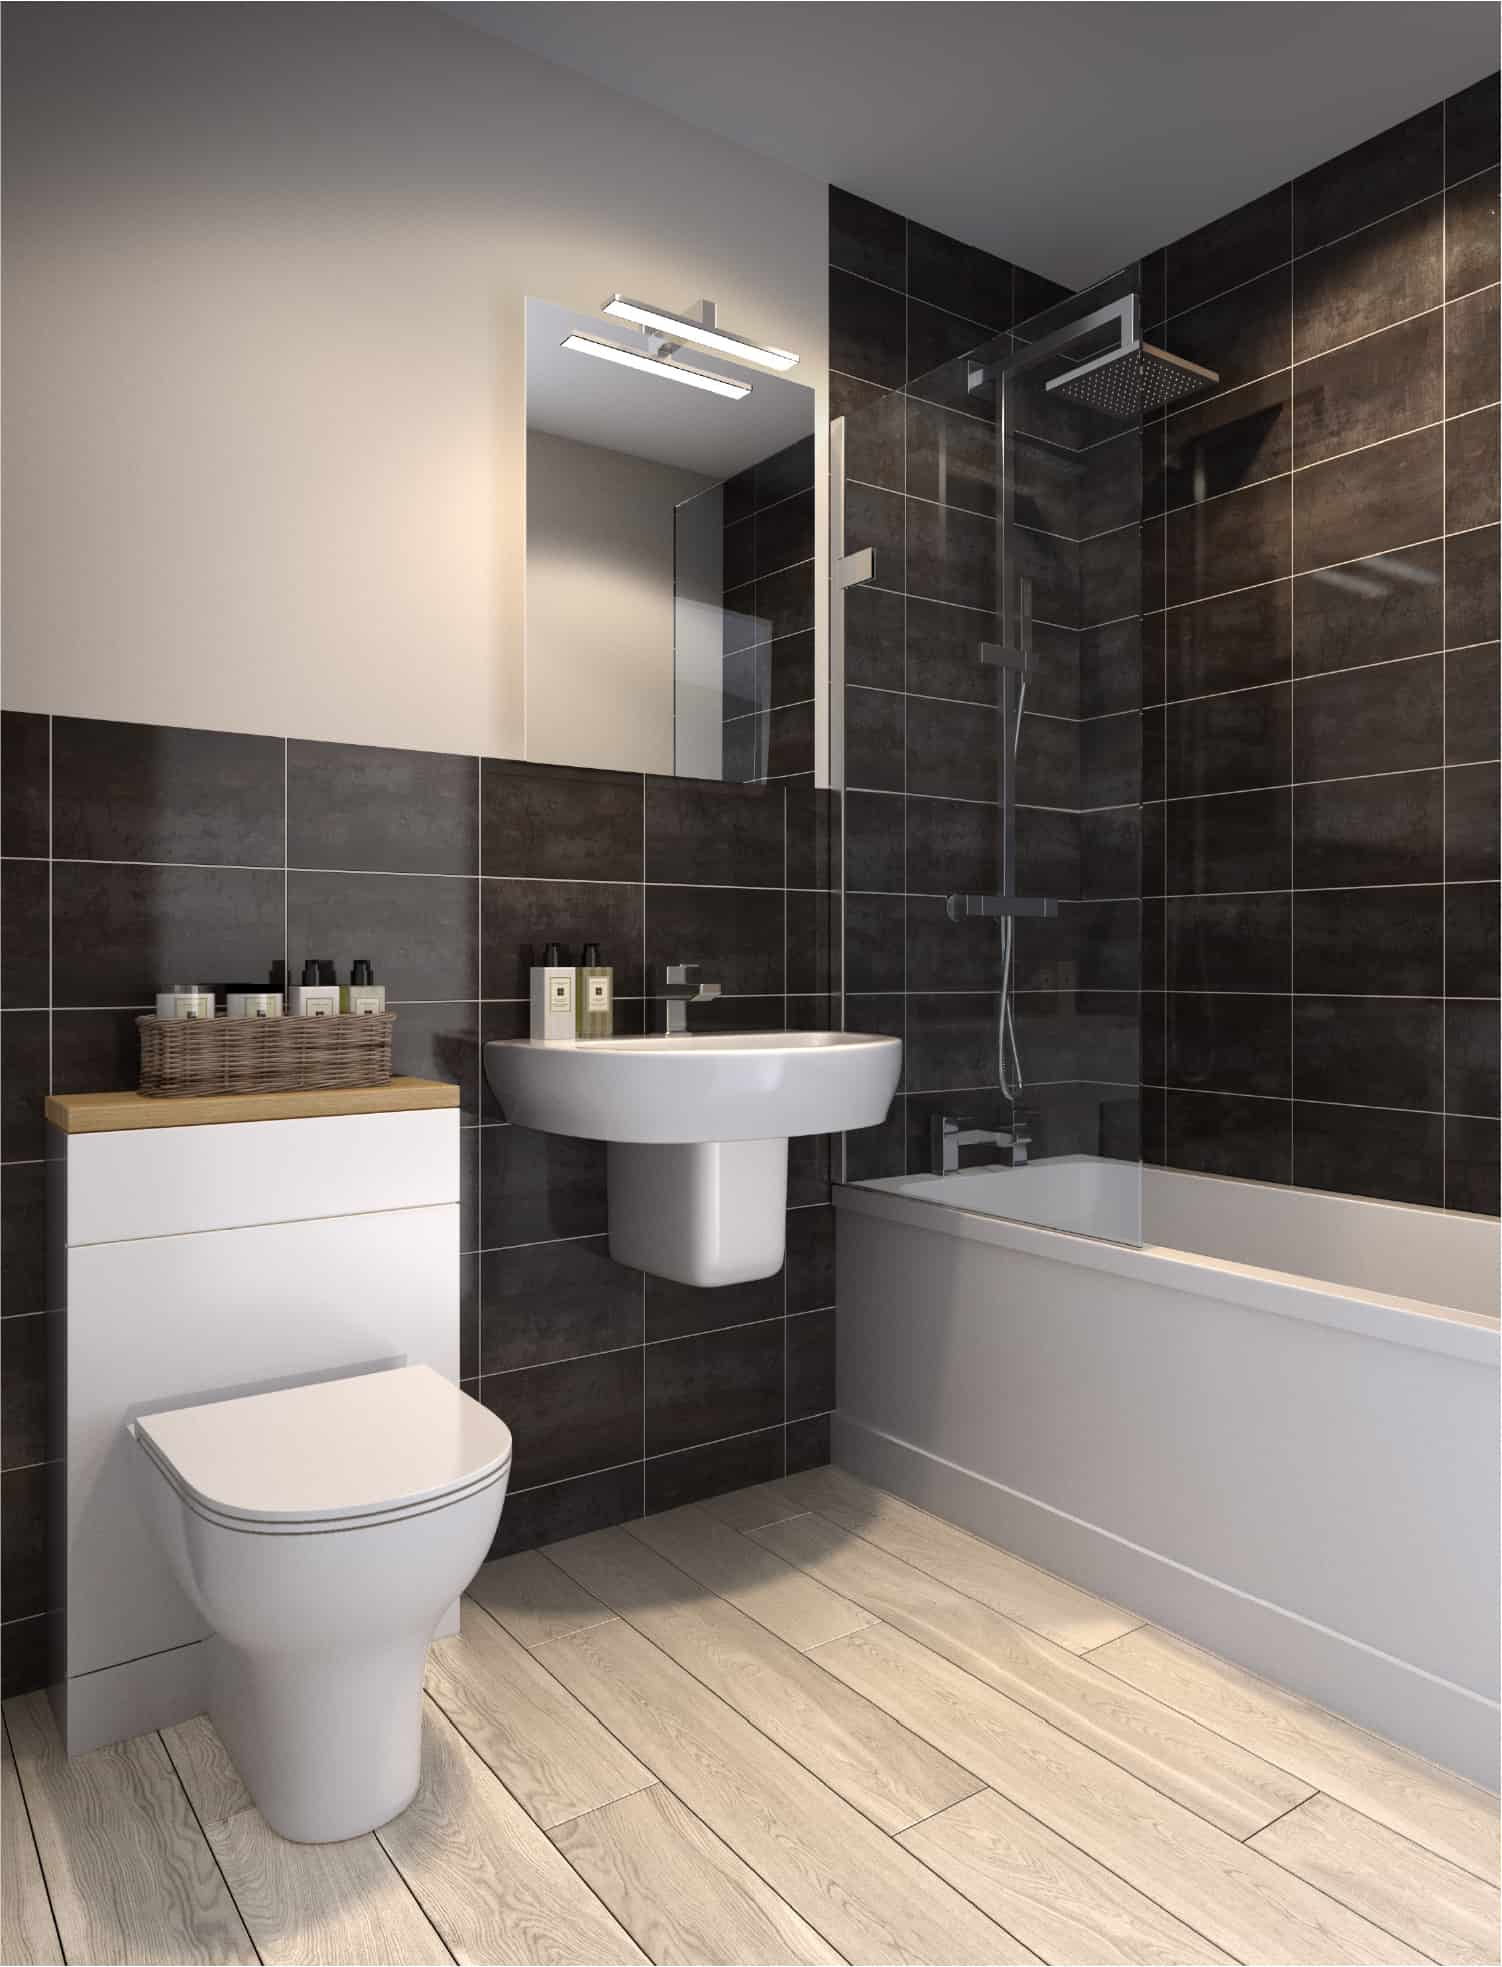 St Pancras Basingstoke CGI Image Interior: Commercial to Residential Property Conversion Apartment